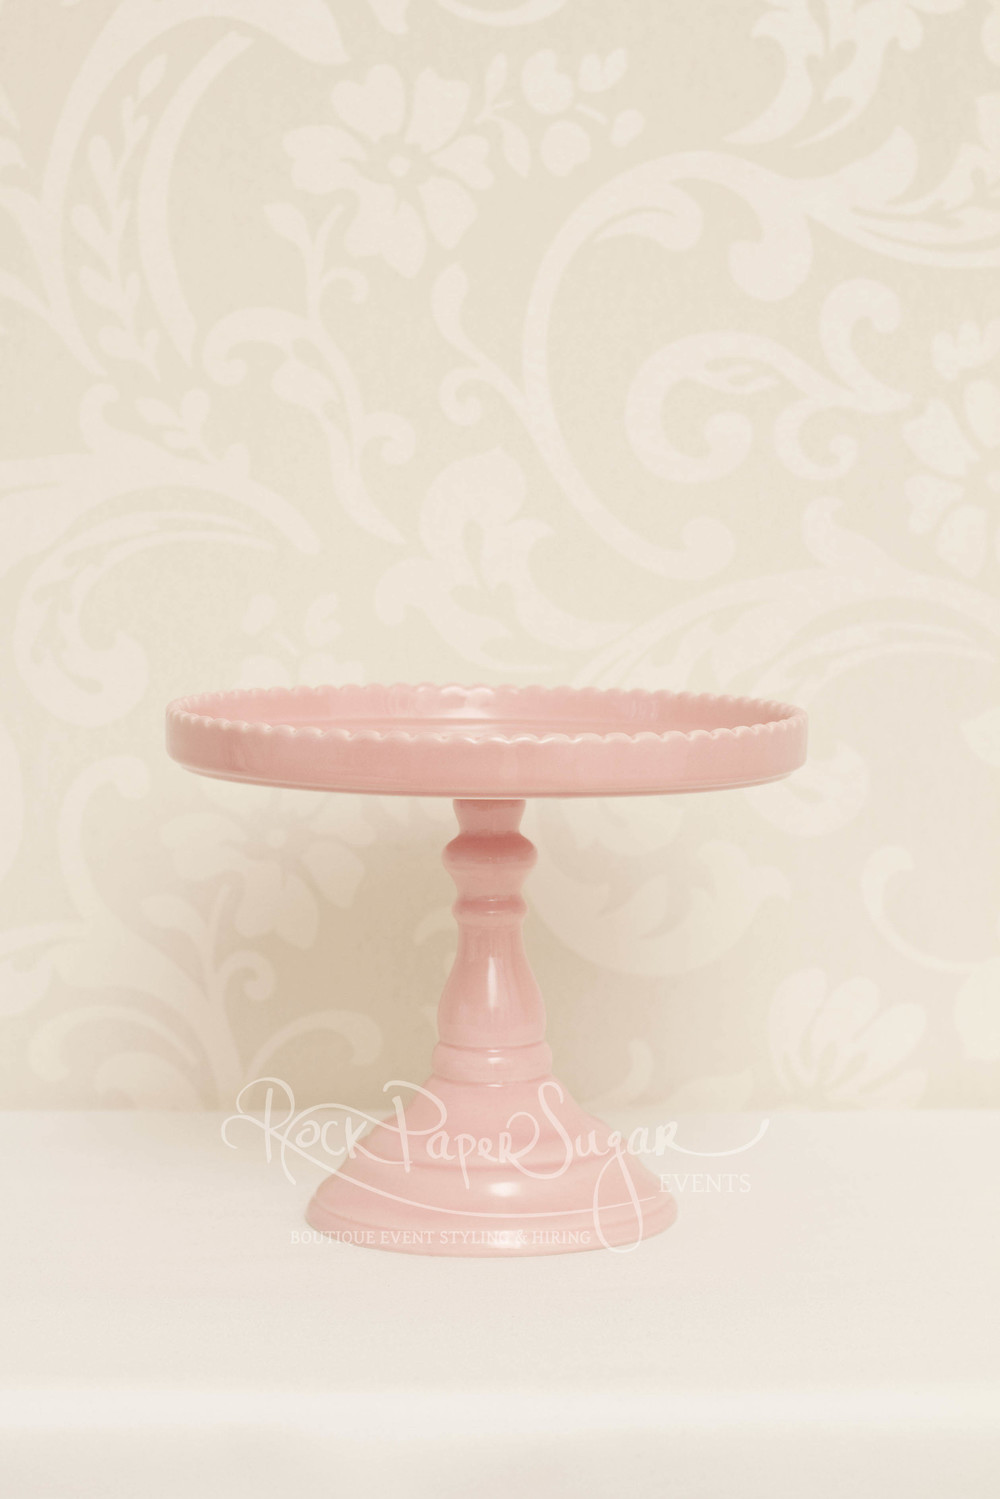 Rock Paper Sugar Events Cake Stands 001.jpg